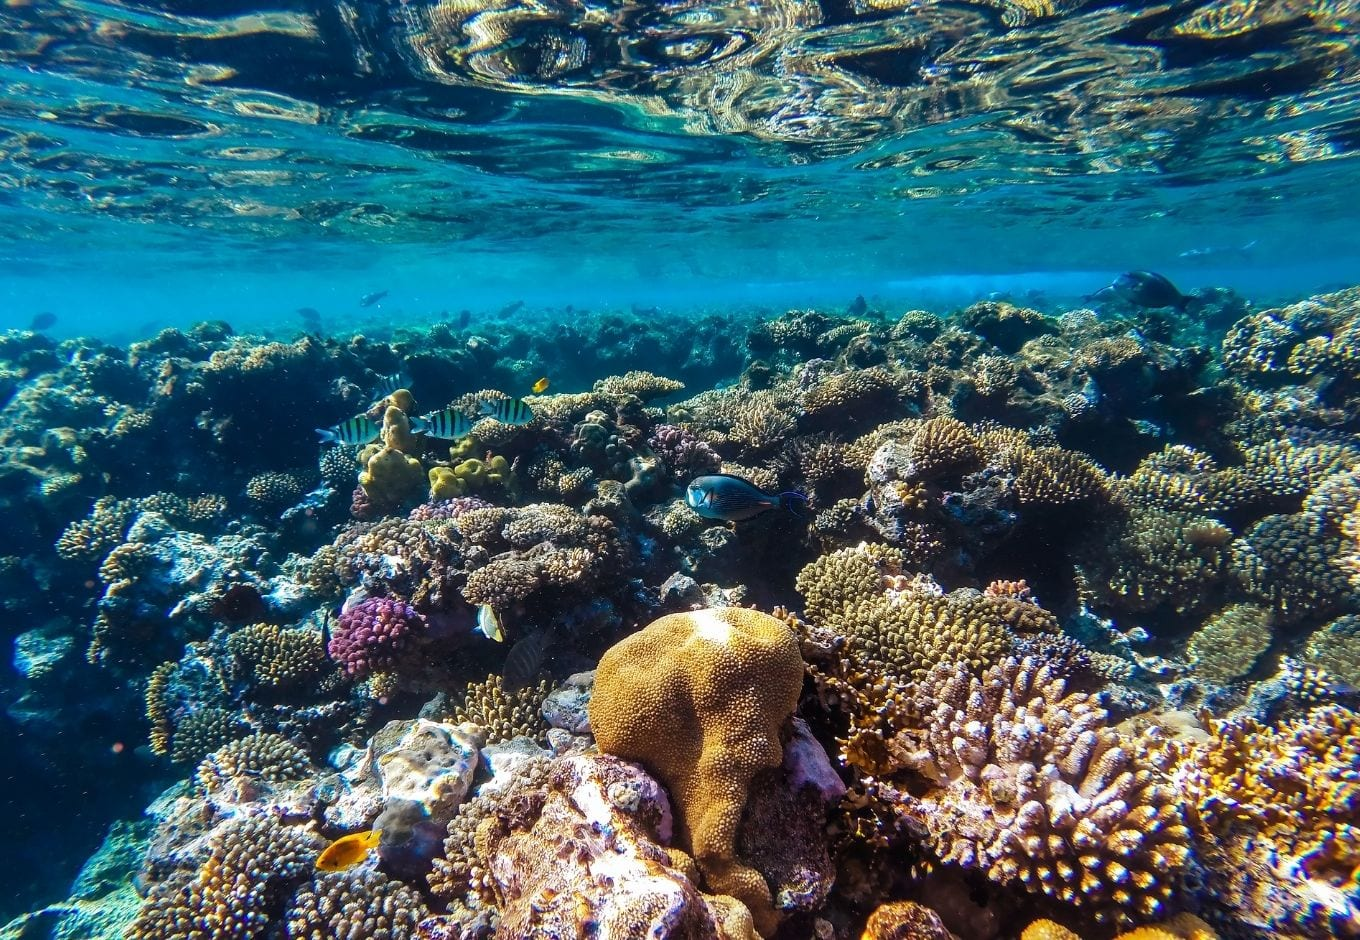 Underwater picture of corals and reefs.